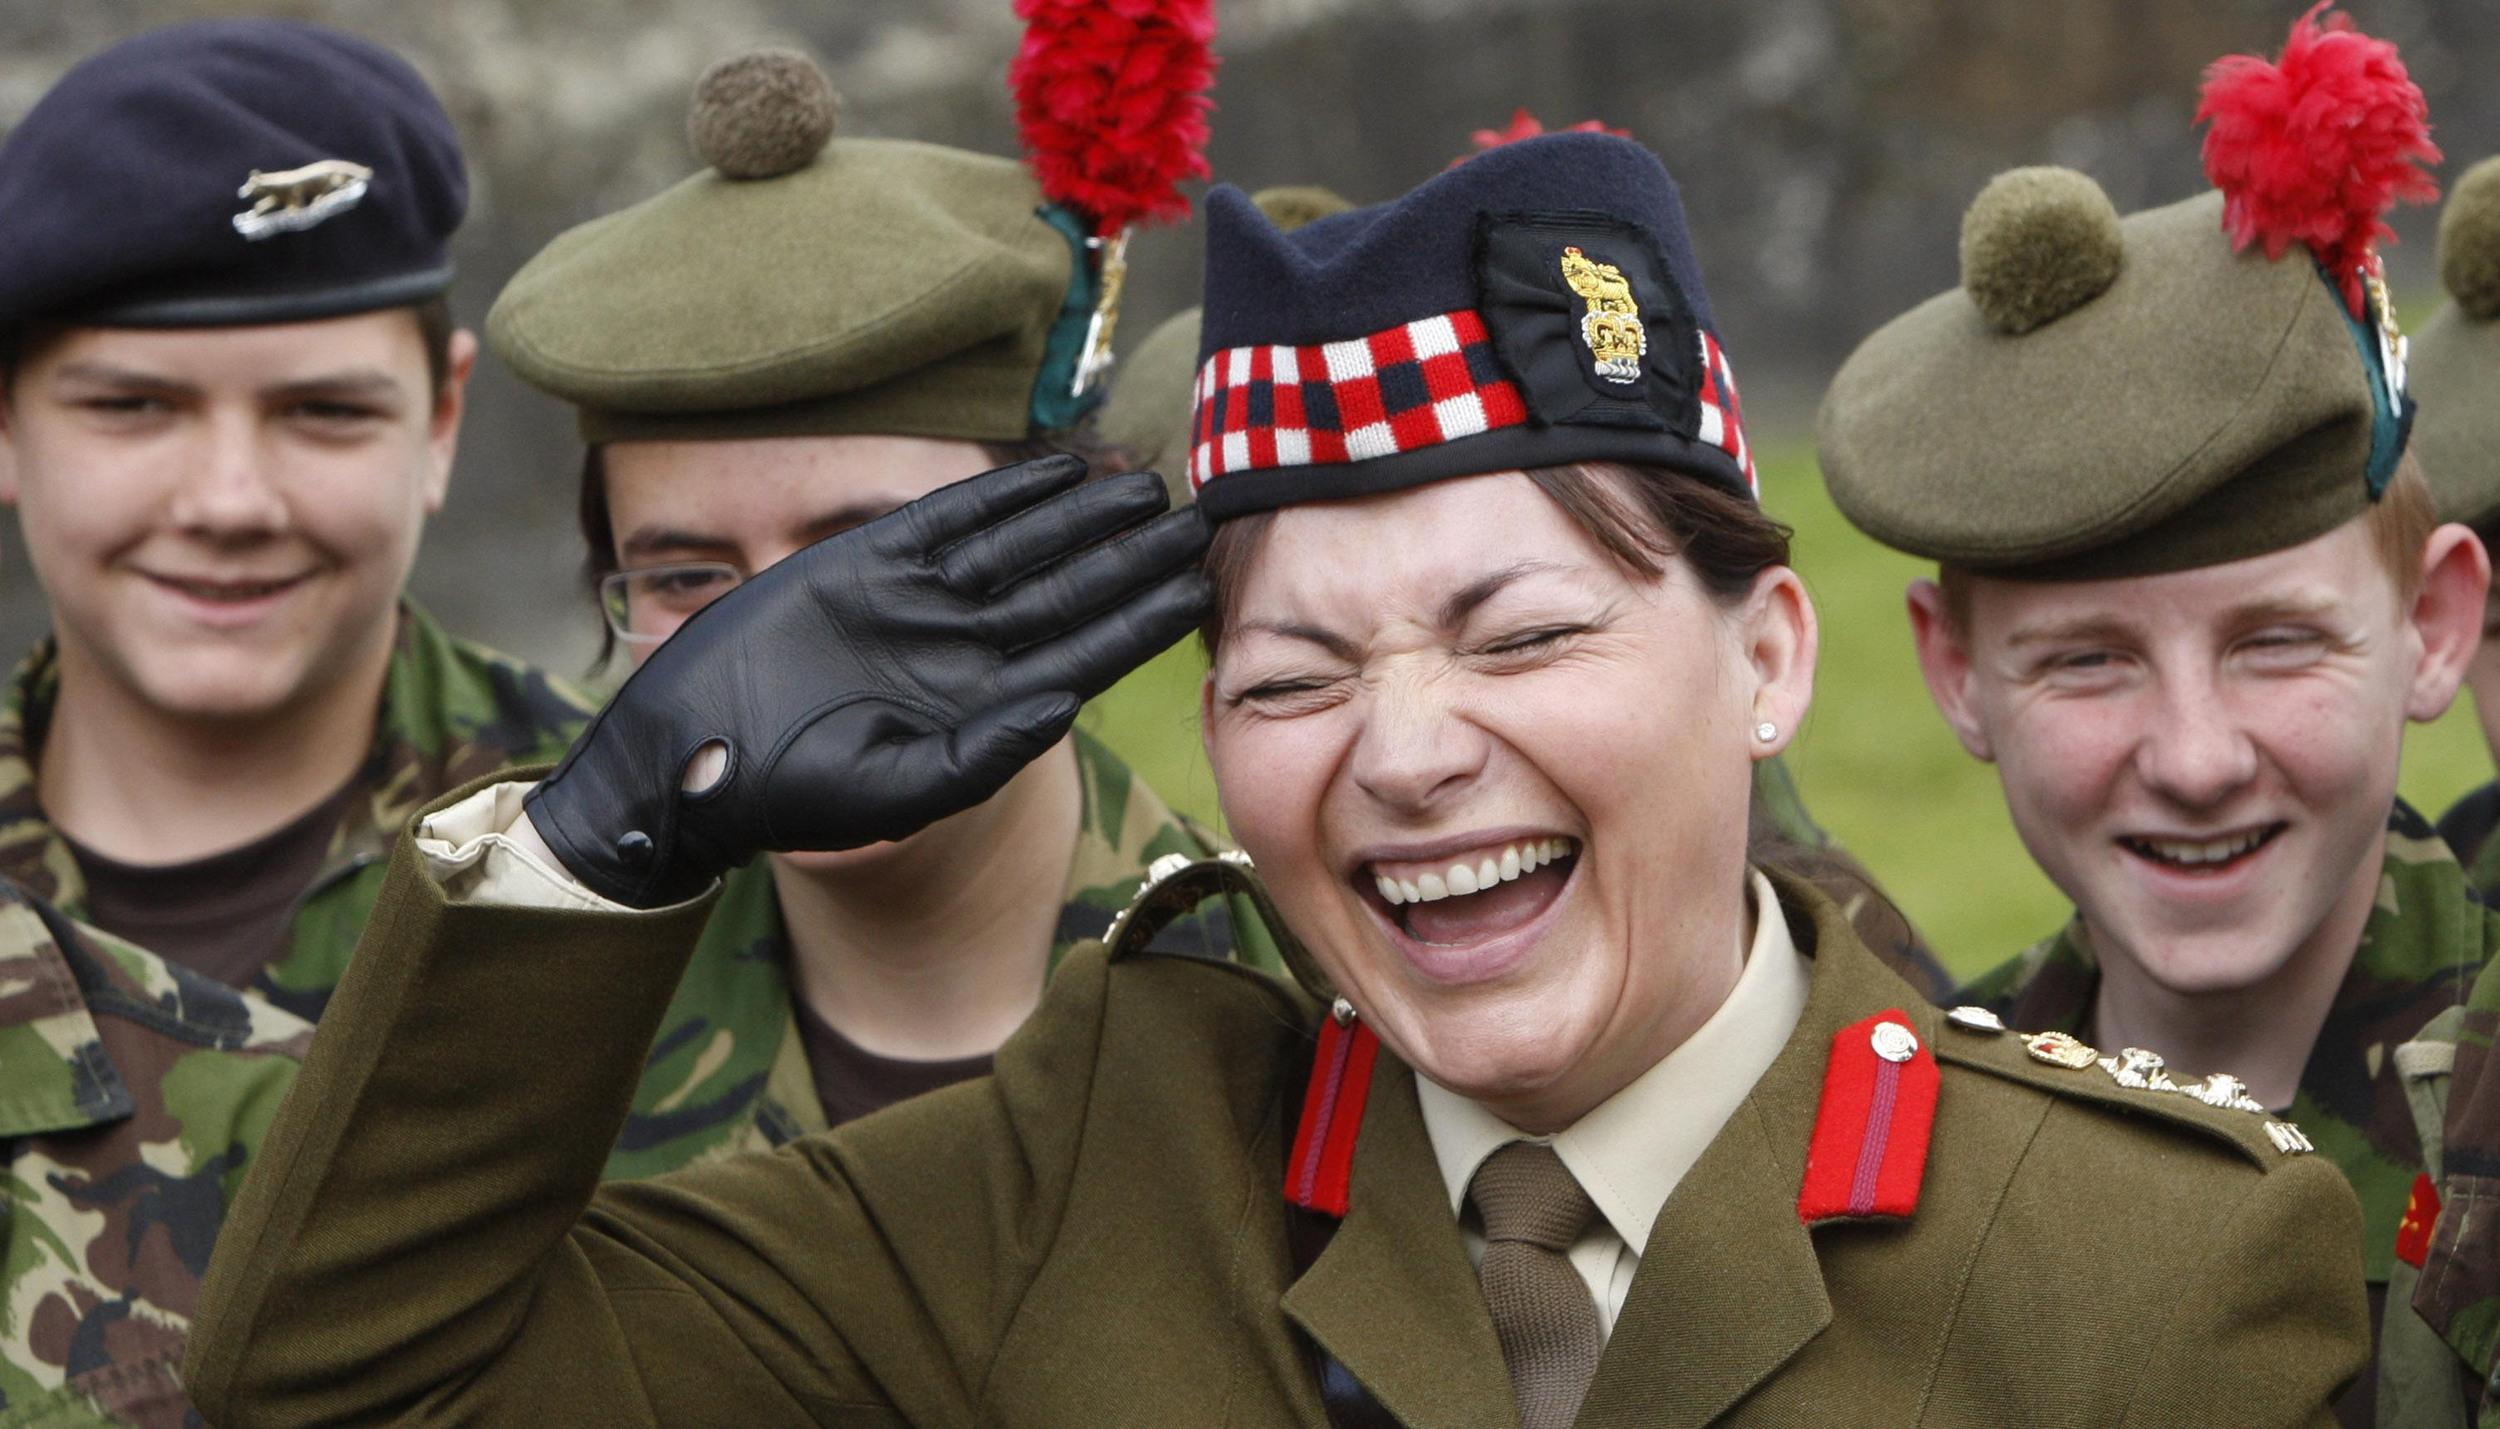 Television presenter and honorary Black Watch colonel Lorraine Kelly laughs as she inspects officer duties at the Royal Gun salute to mark the Queen's birthday at Stirling Castle in Scotland.